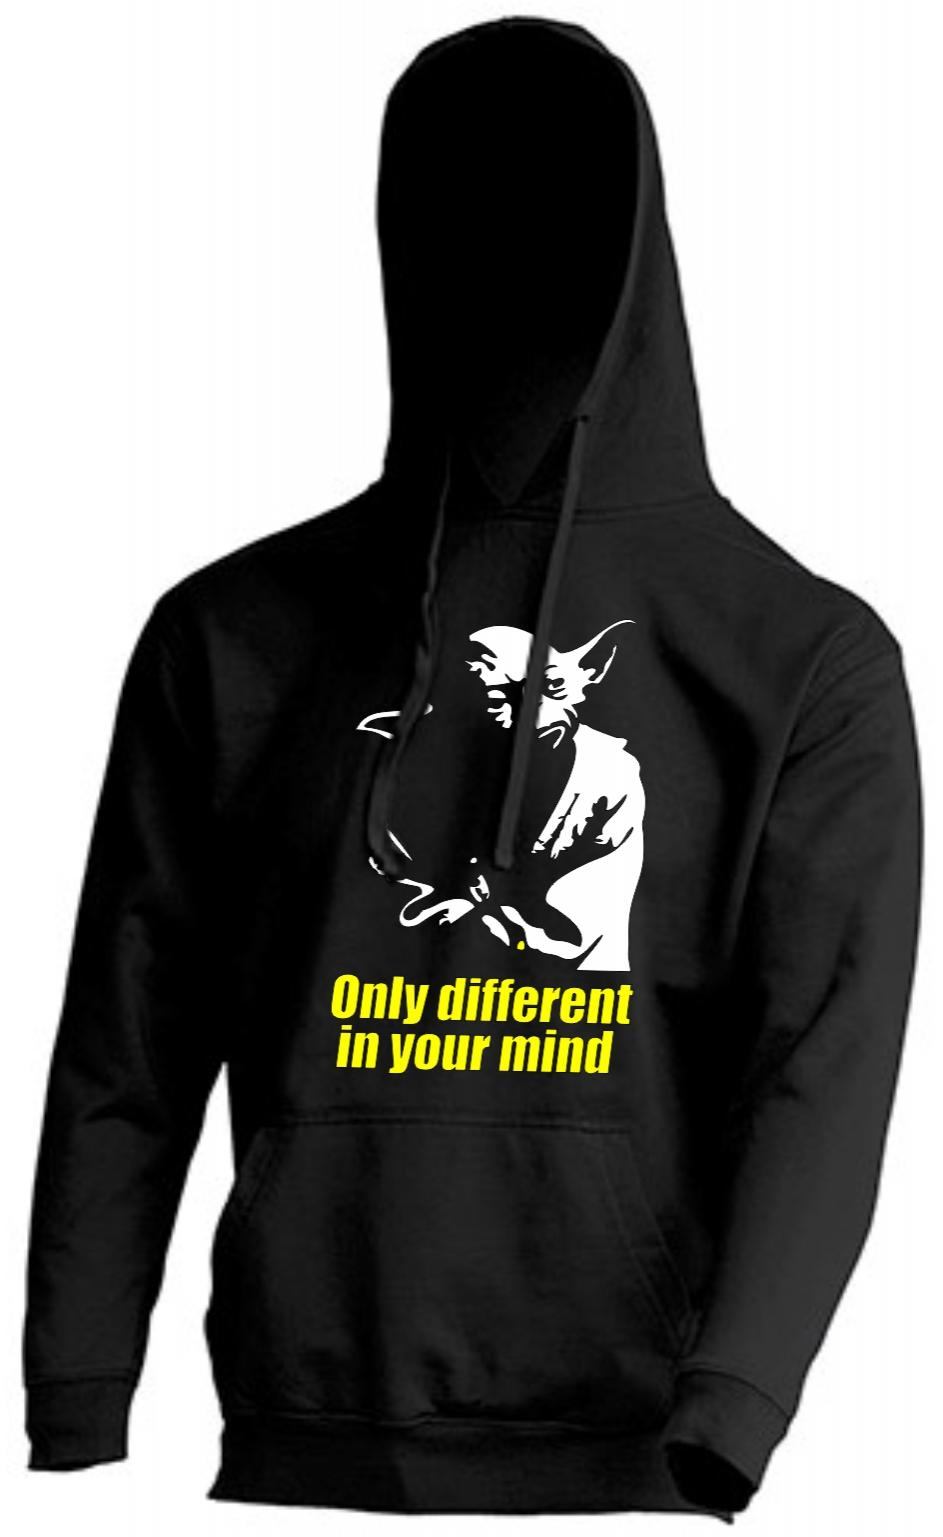 SUDADERA CAPUCHA YODA ONLY DIFFERENT IN YOUR MIND